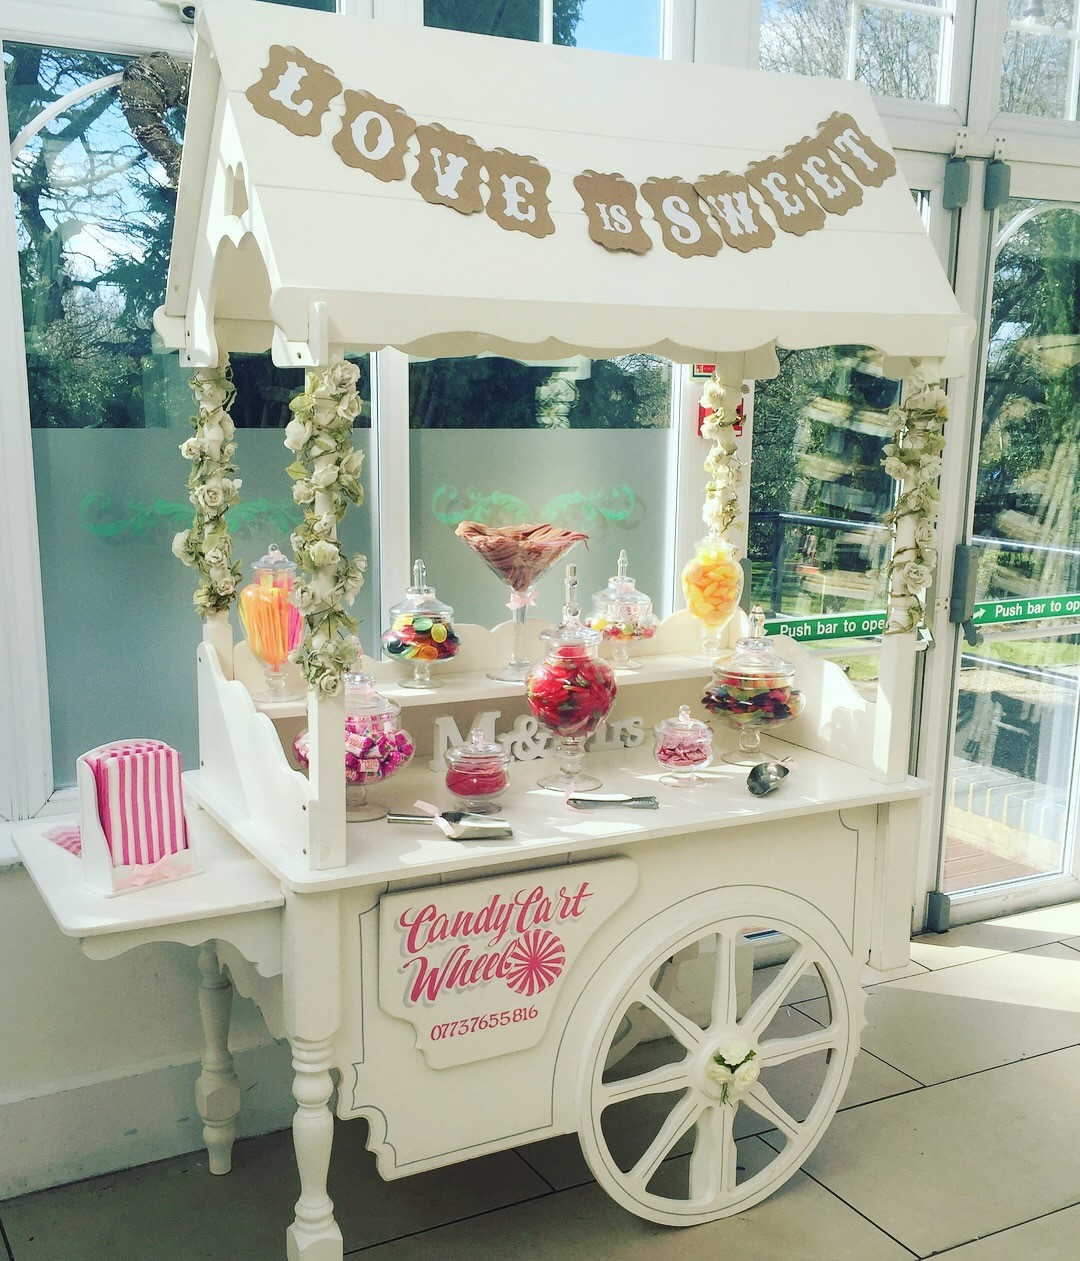 Candy Feast Wedding Cart - Ariana Gardens Chelmsford